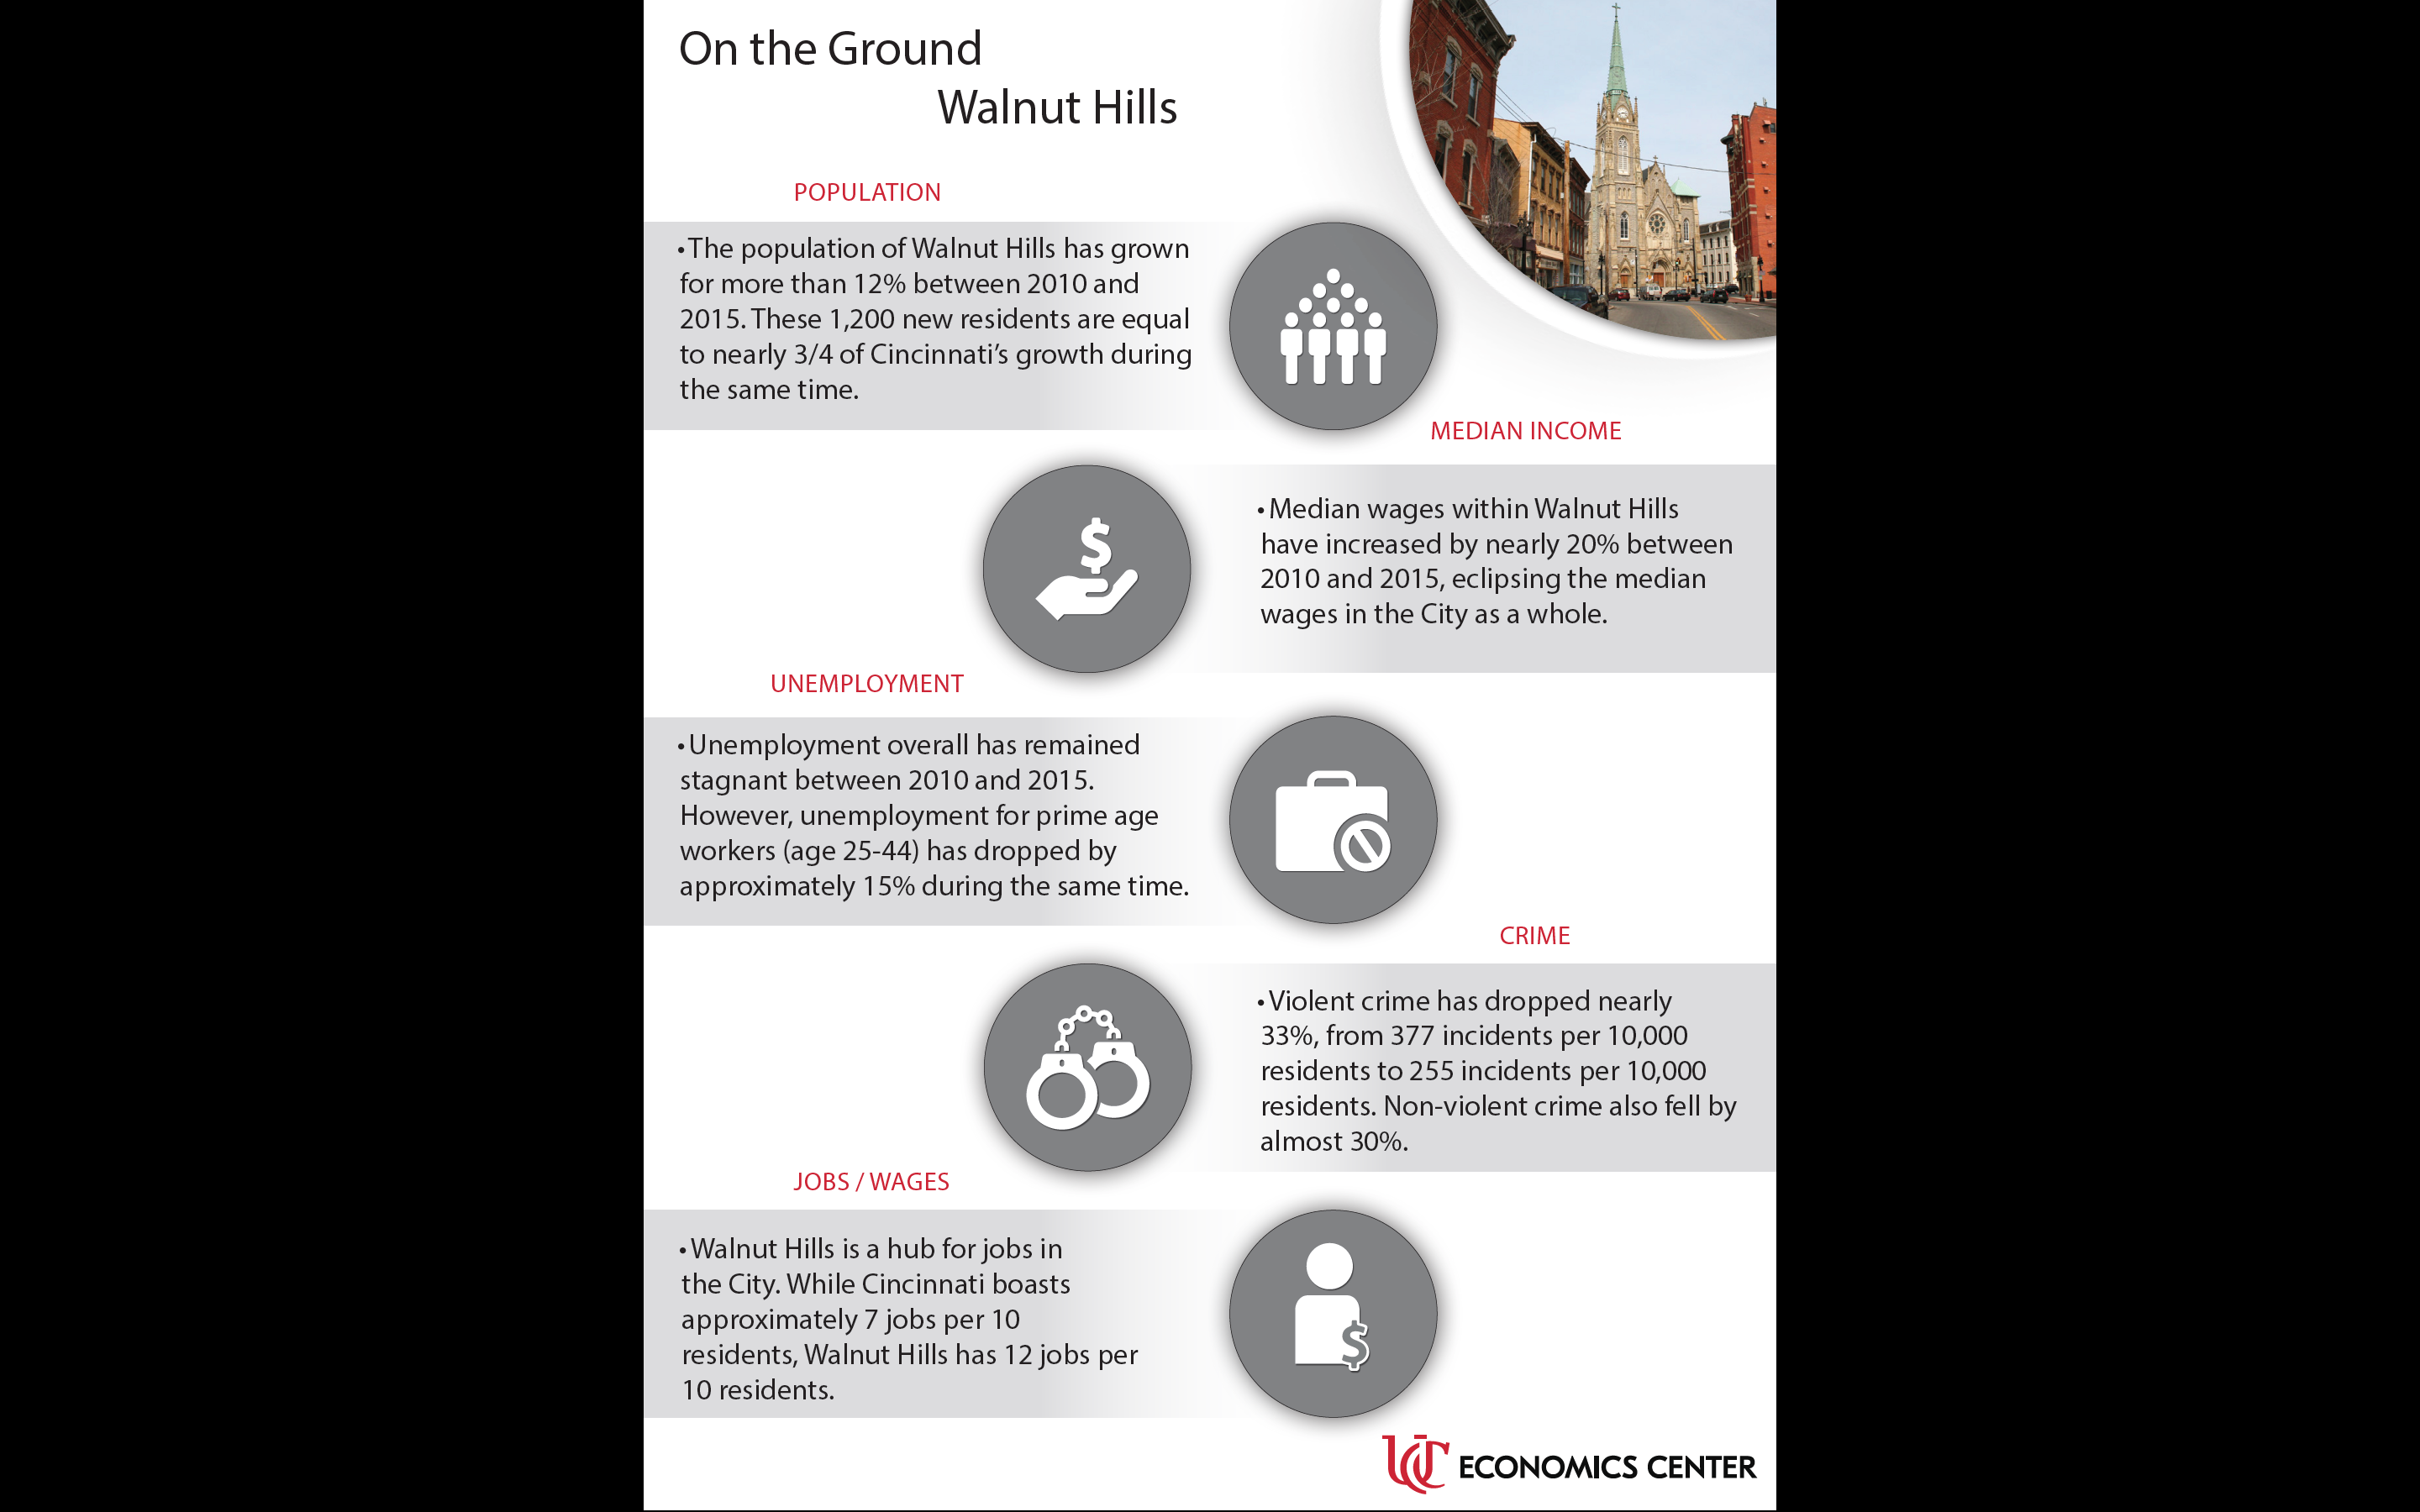 The team at the Economics Center produced a data analysis of Walnut Hills as part of On the Ground.